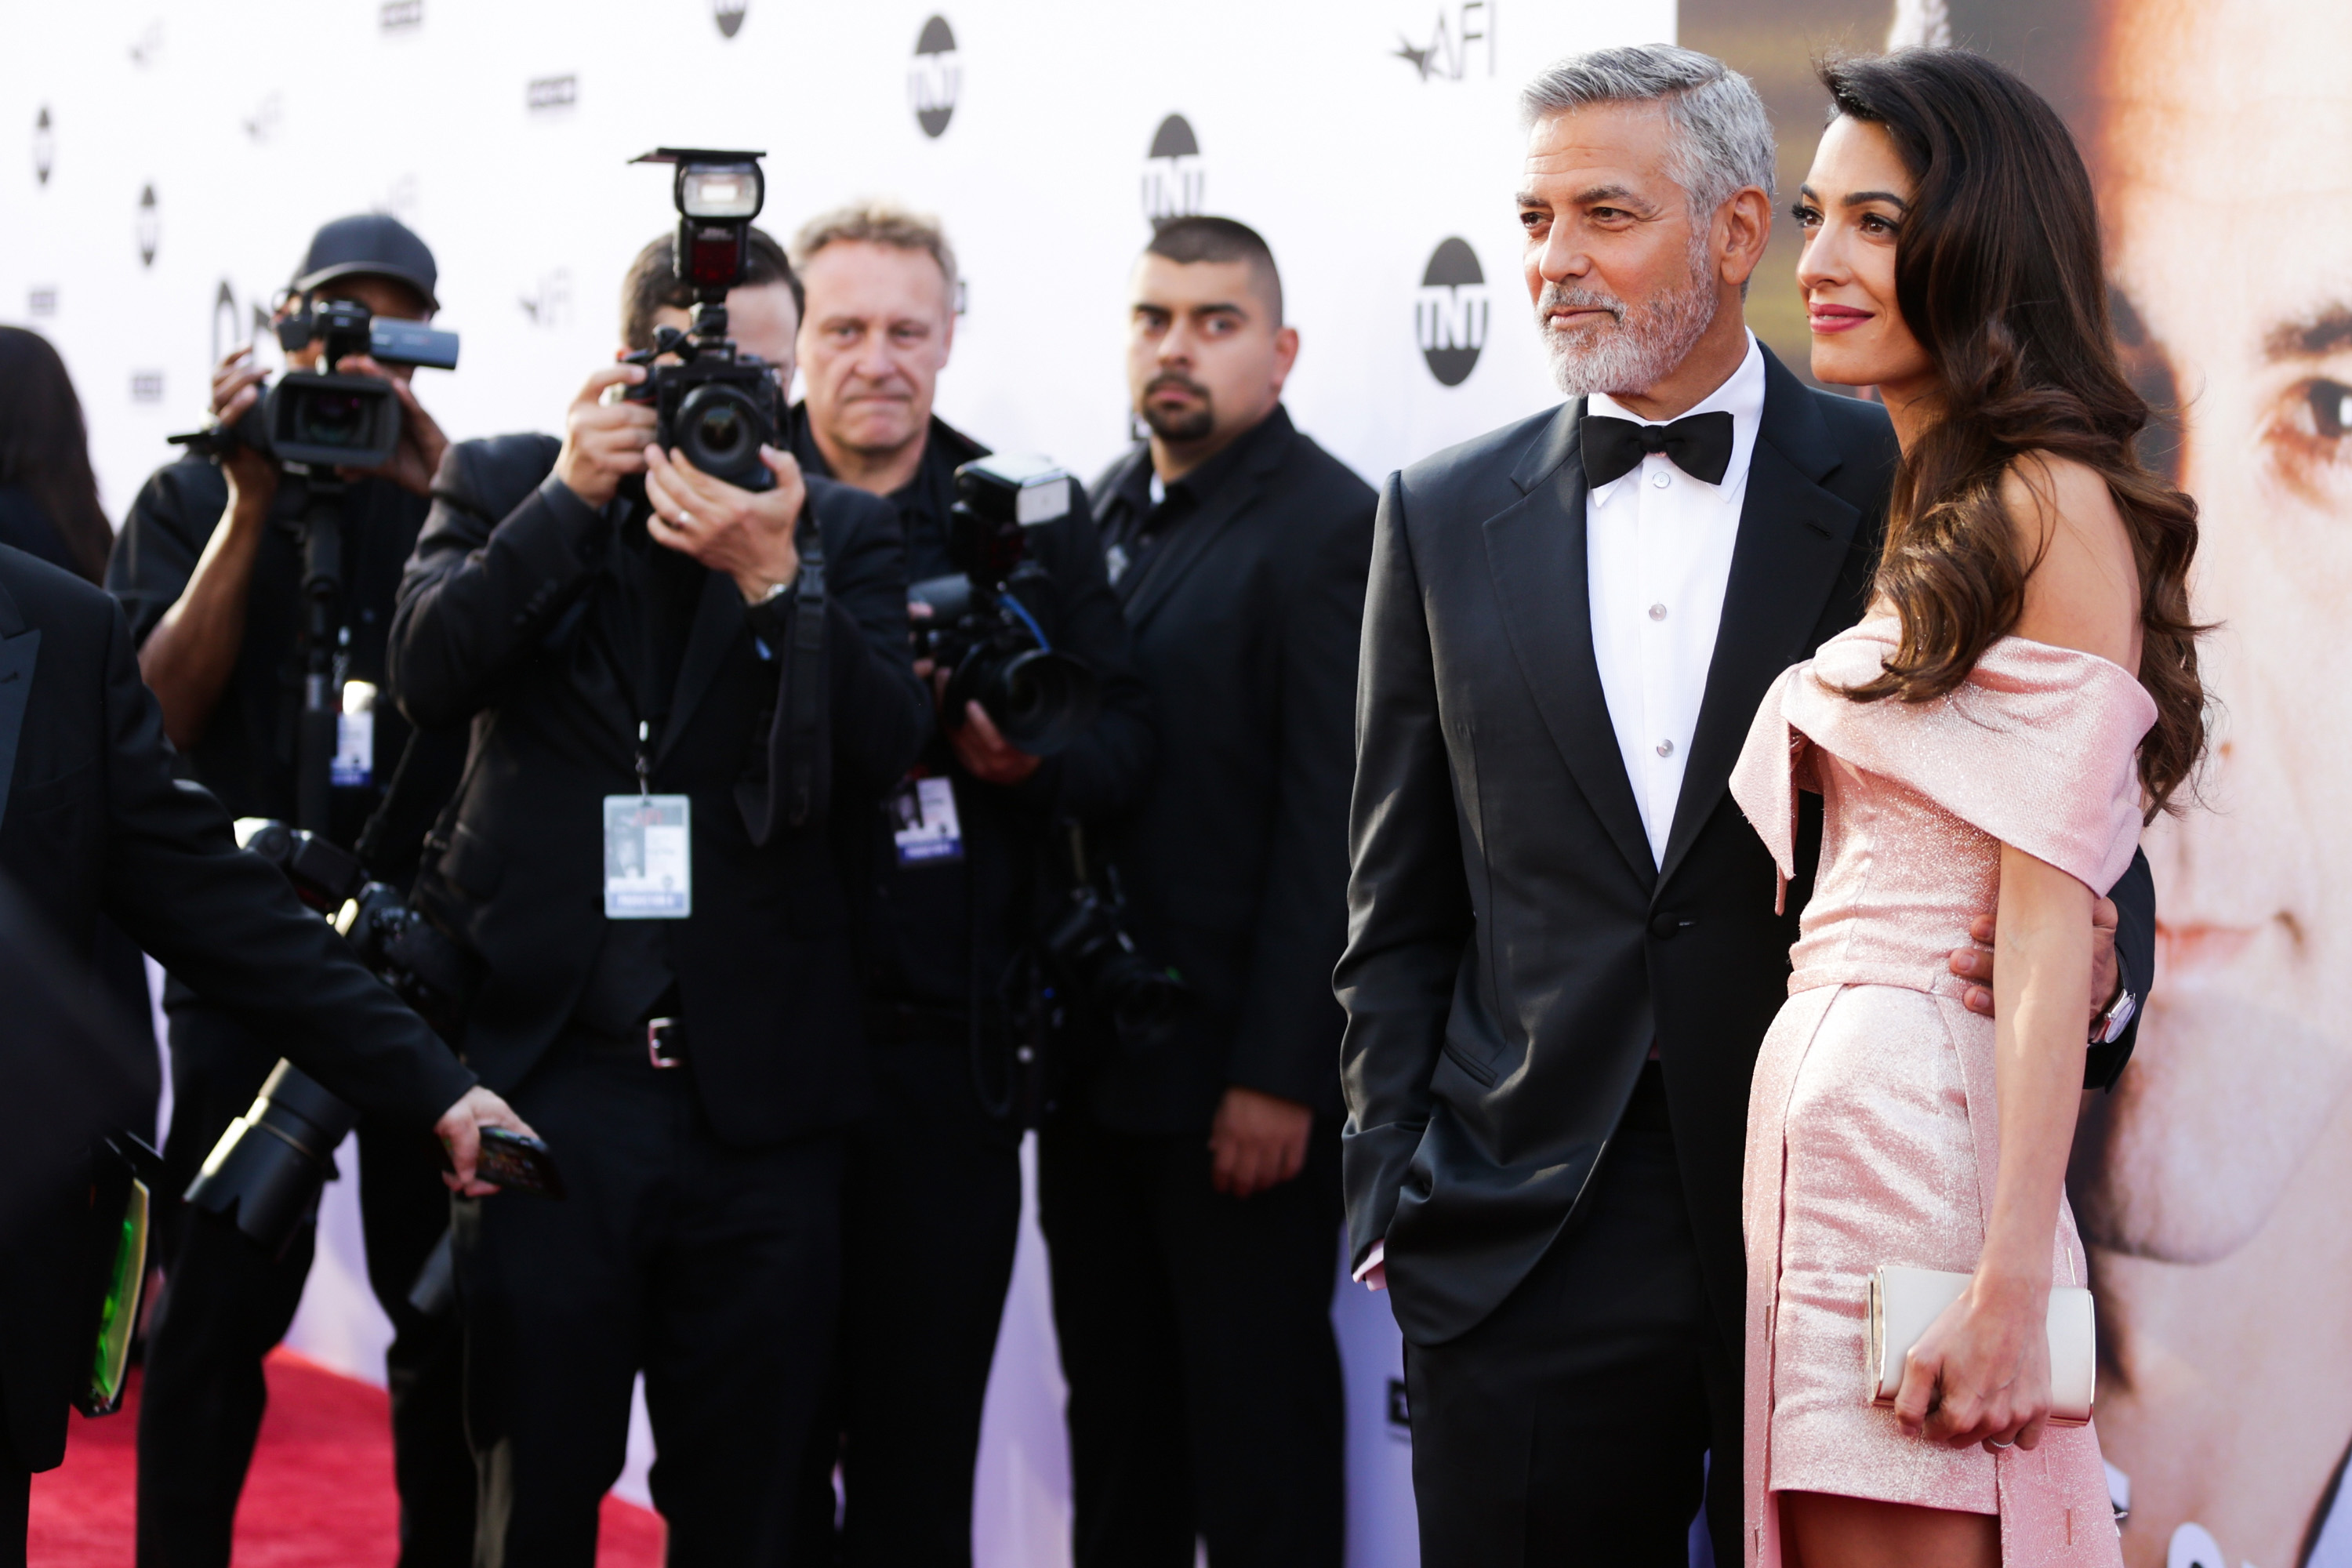 HOLLYWOOD, CA - JUNE 07:  Honoree George Clooney (L) and Amal Clooney attend the American Film Institute's 46th Life Achievement Award Gala Tribute to George Clooney at Dolby Theatre on June 7, 2018 in Hollywood, California.  (Photo by Rich Fury/Getty Images)